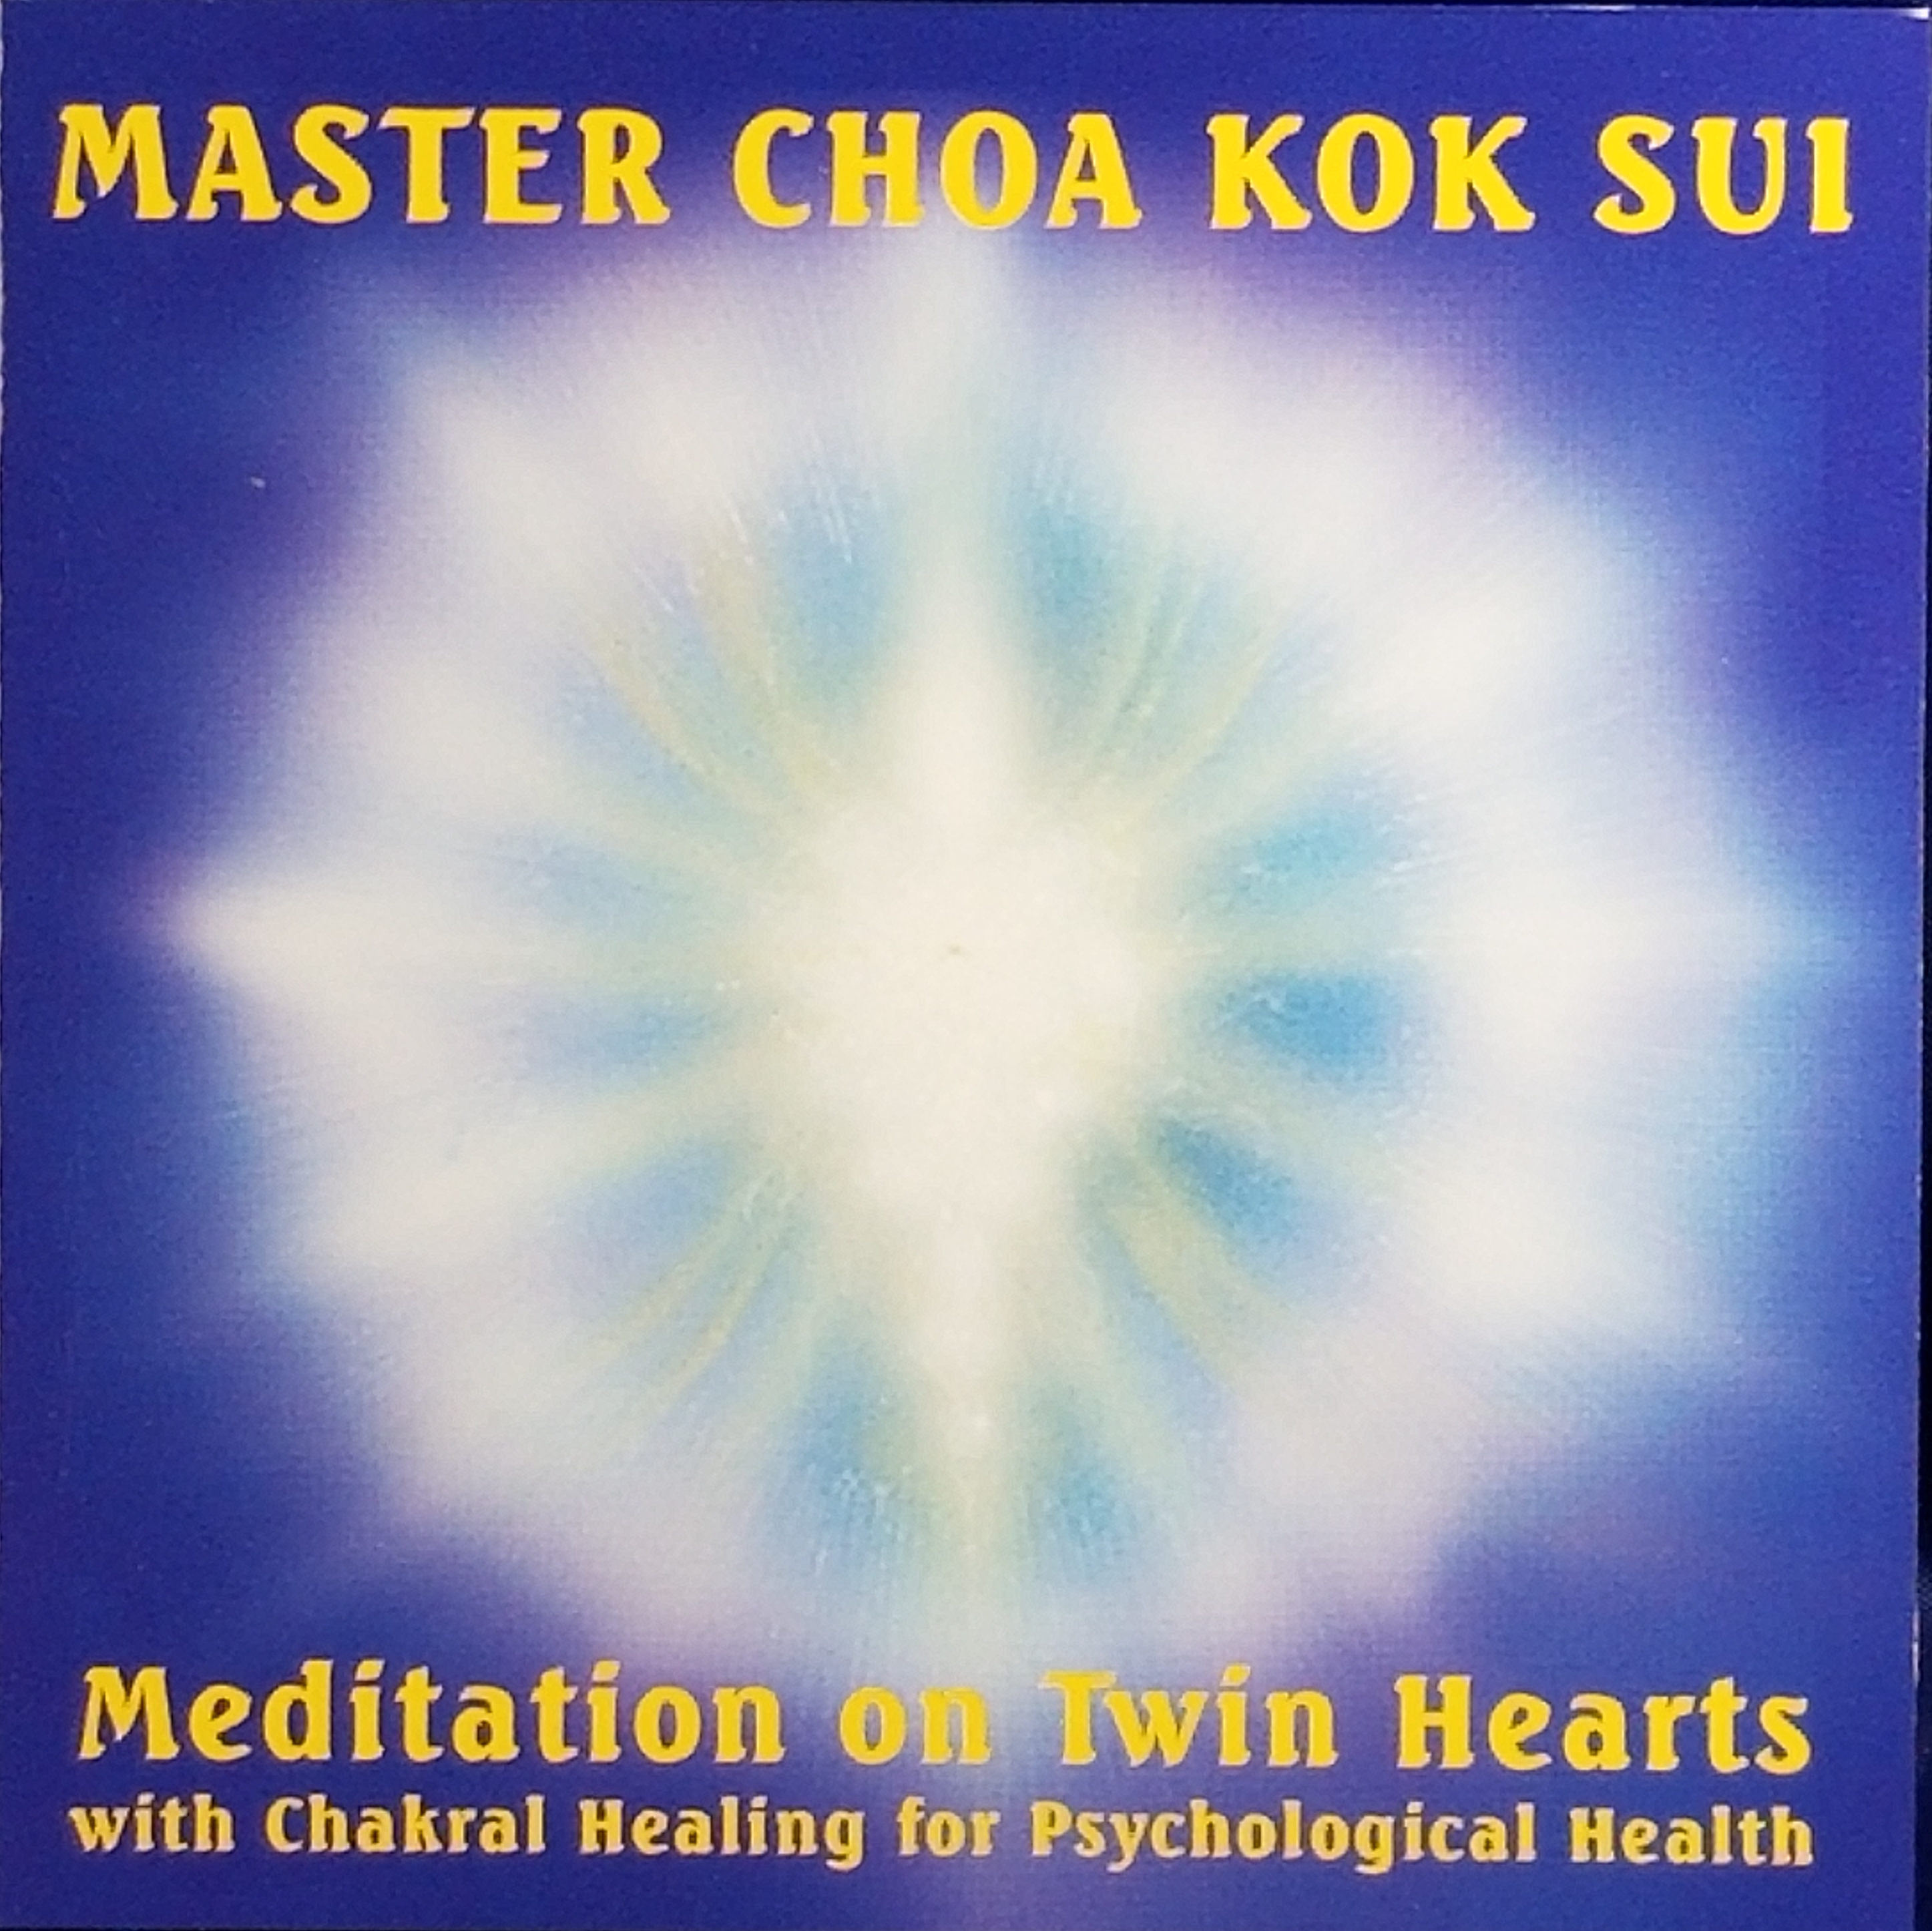 Meditation on Twin Hearts with Psychological Healing